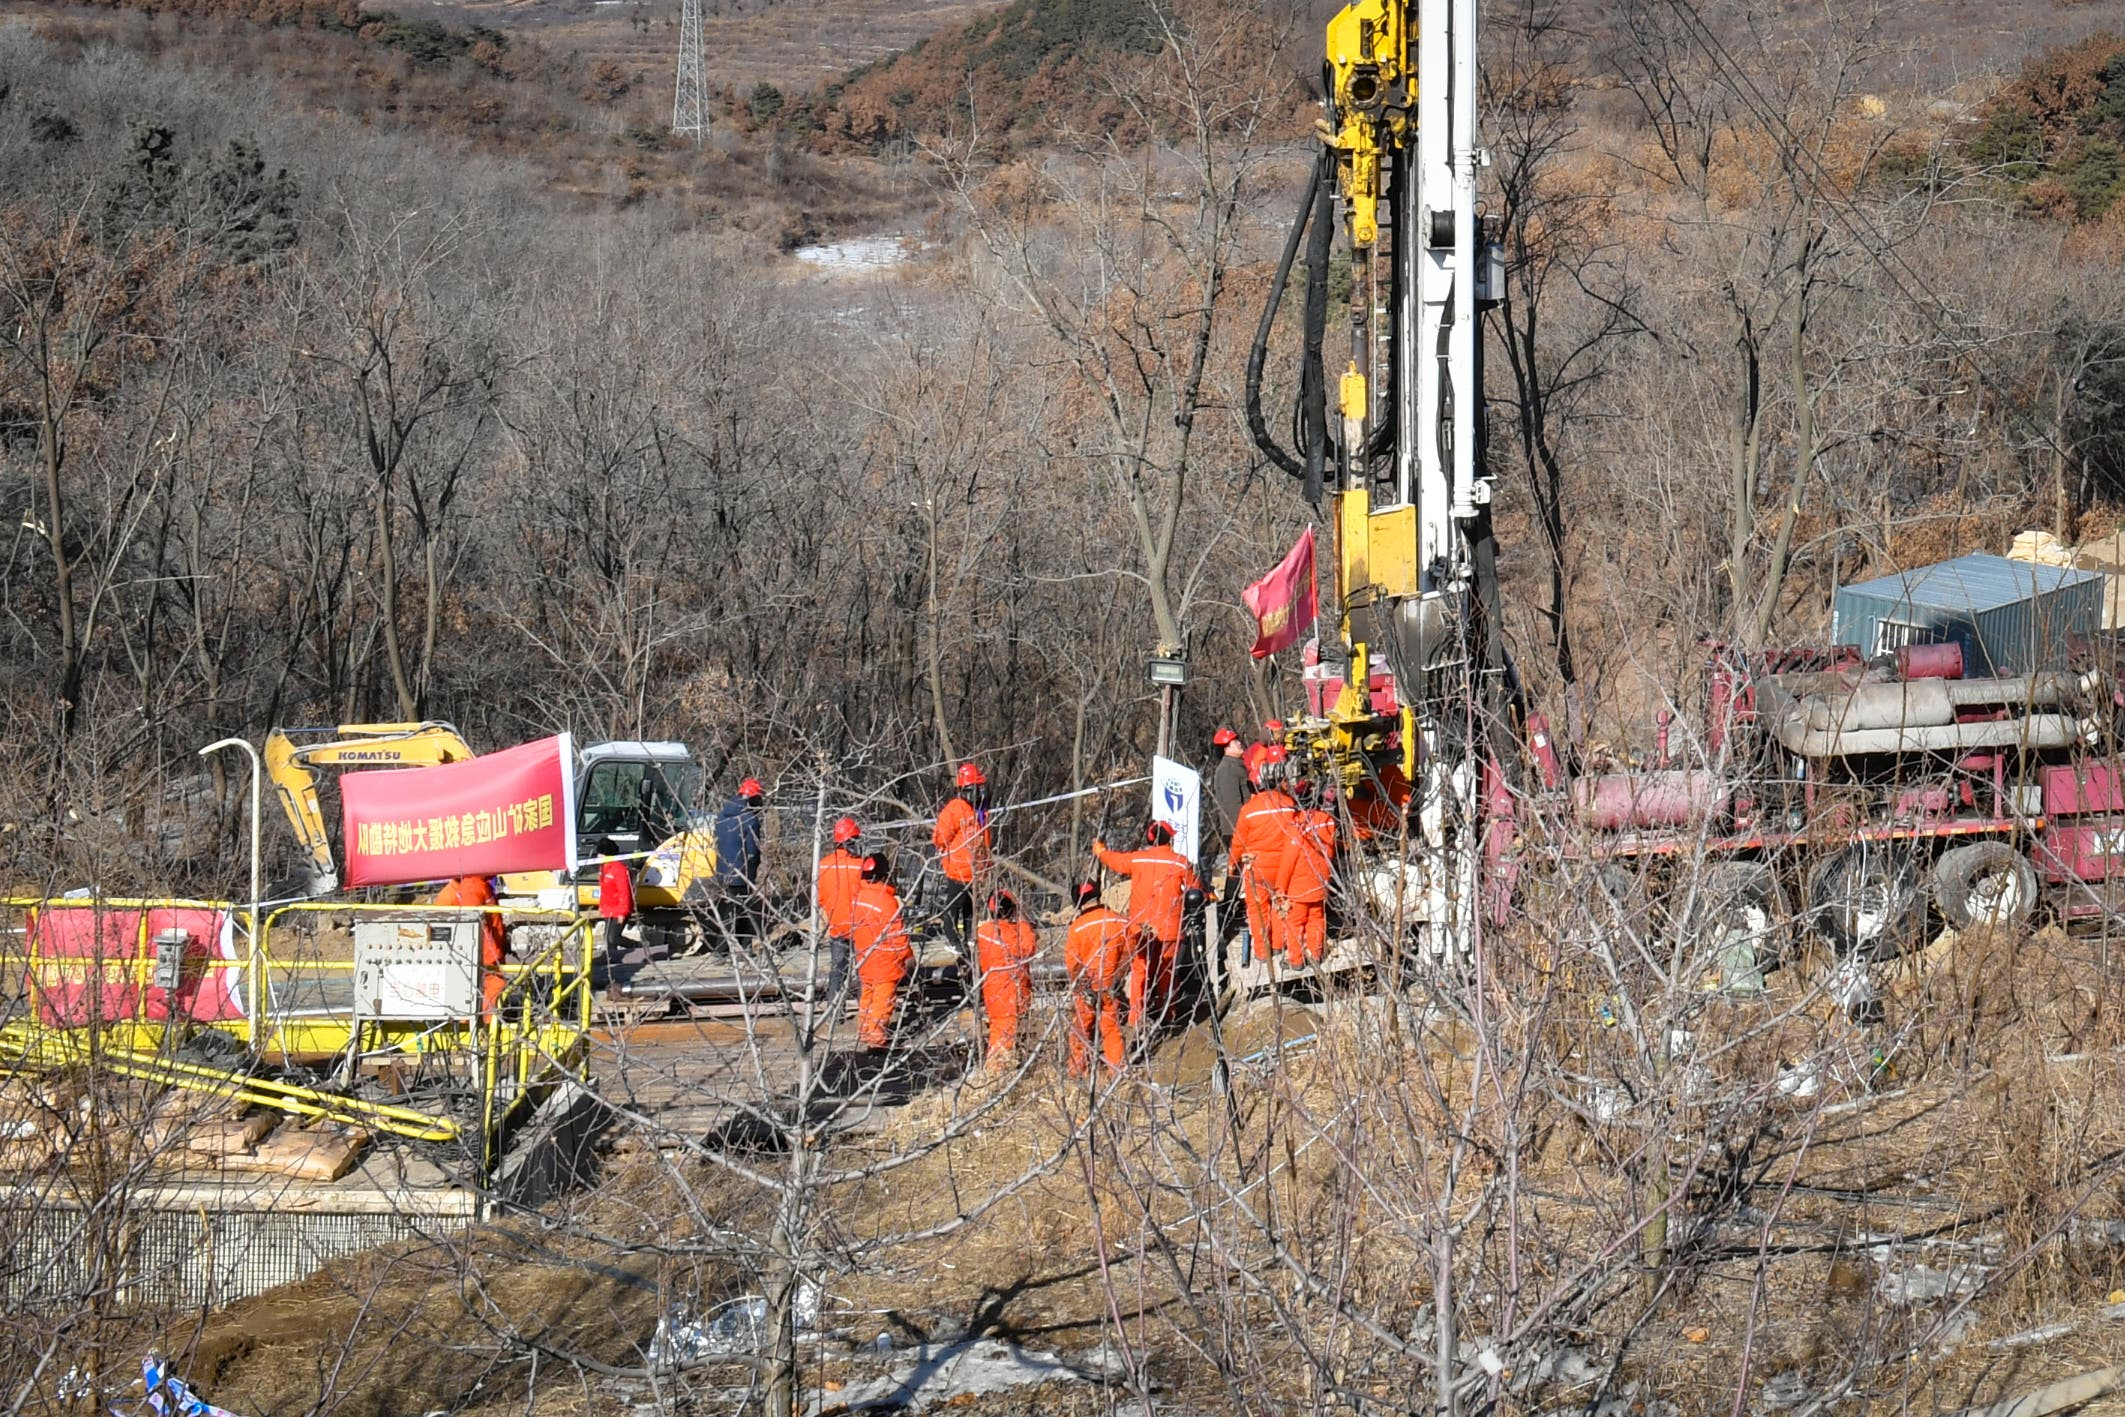 This photo taken on January 13, 2021 shows rescuers working at the site of gold mine explosion where 22 miners were trapped.